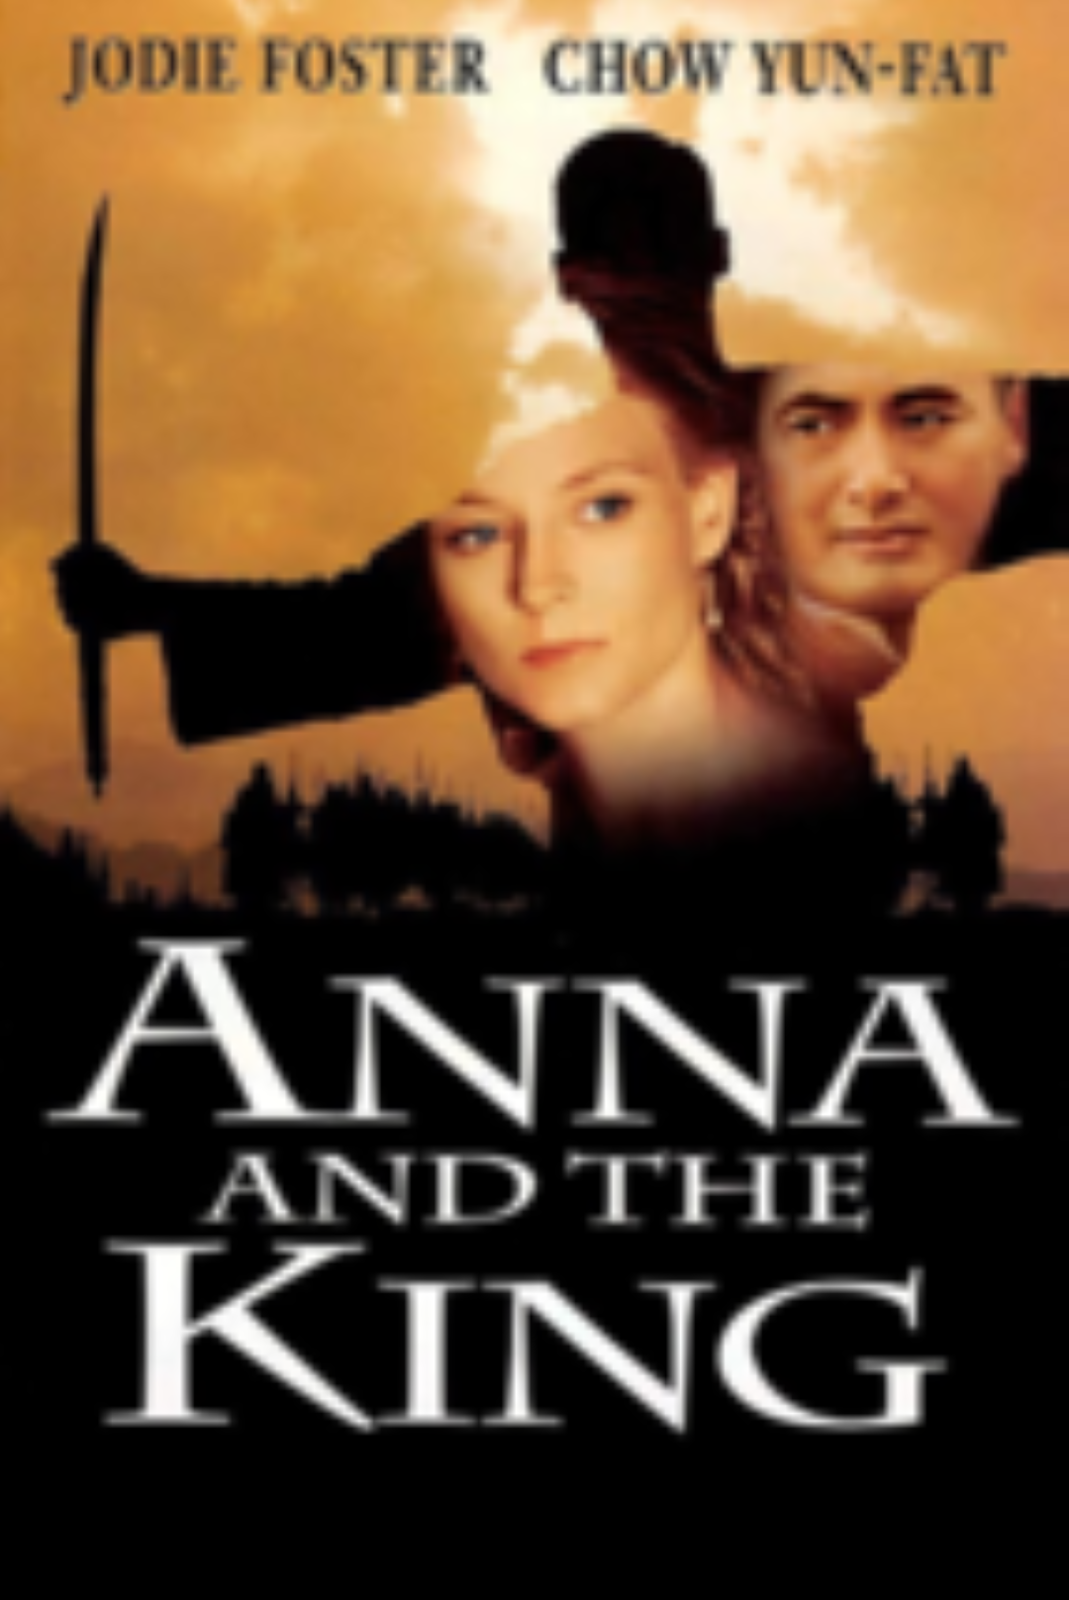 Anna and the King Vhs